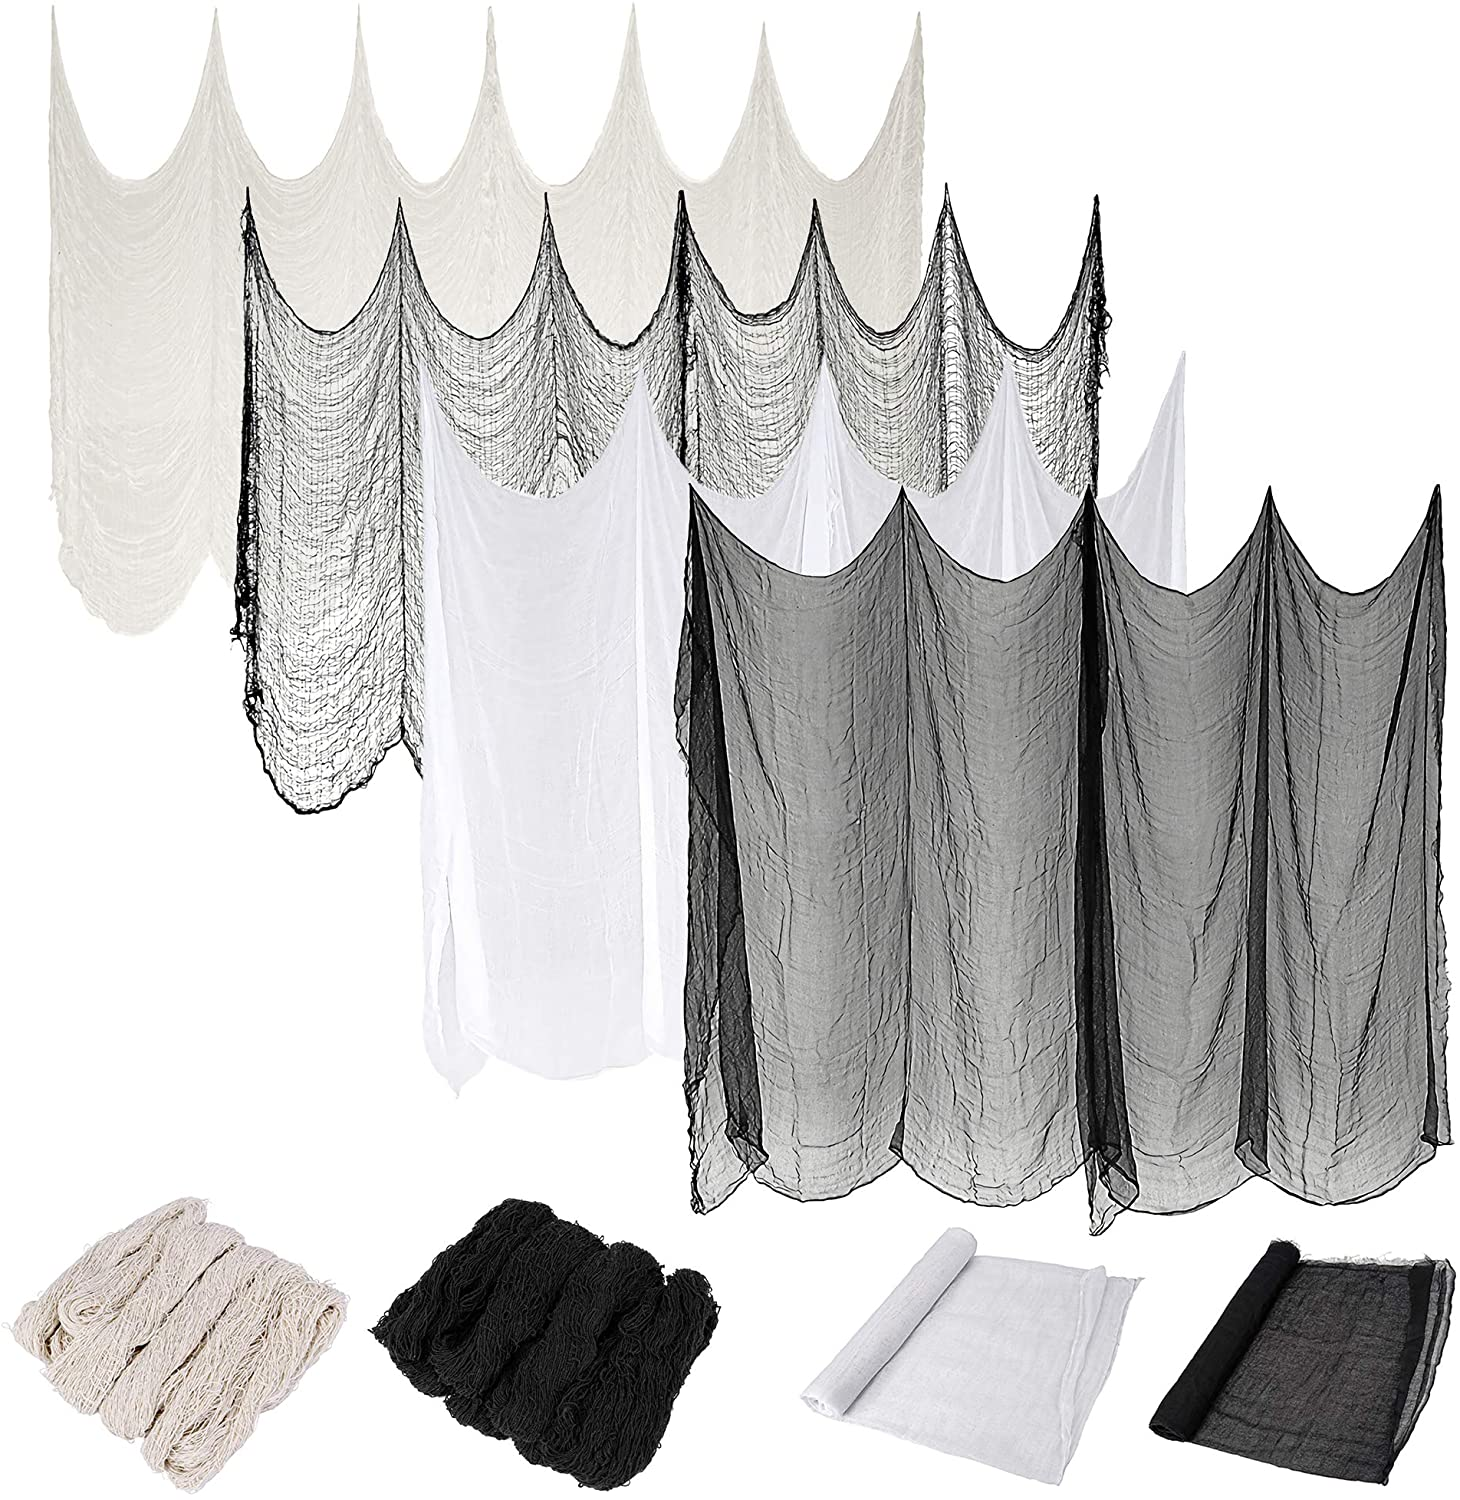 CozyCabin 4PCS Halloween Creepy Cloth Black White Gauze Decoration, 78 x 30 Inch Halloween Scary Spooky Clothes for Windows and Table Cover Stairs Haunted Houses Party Supplies